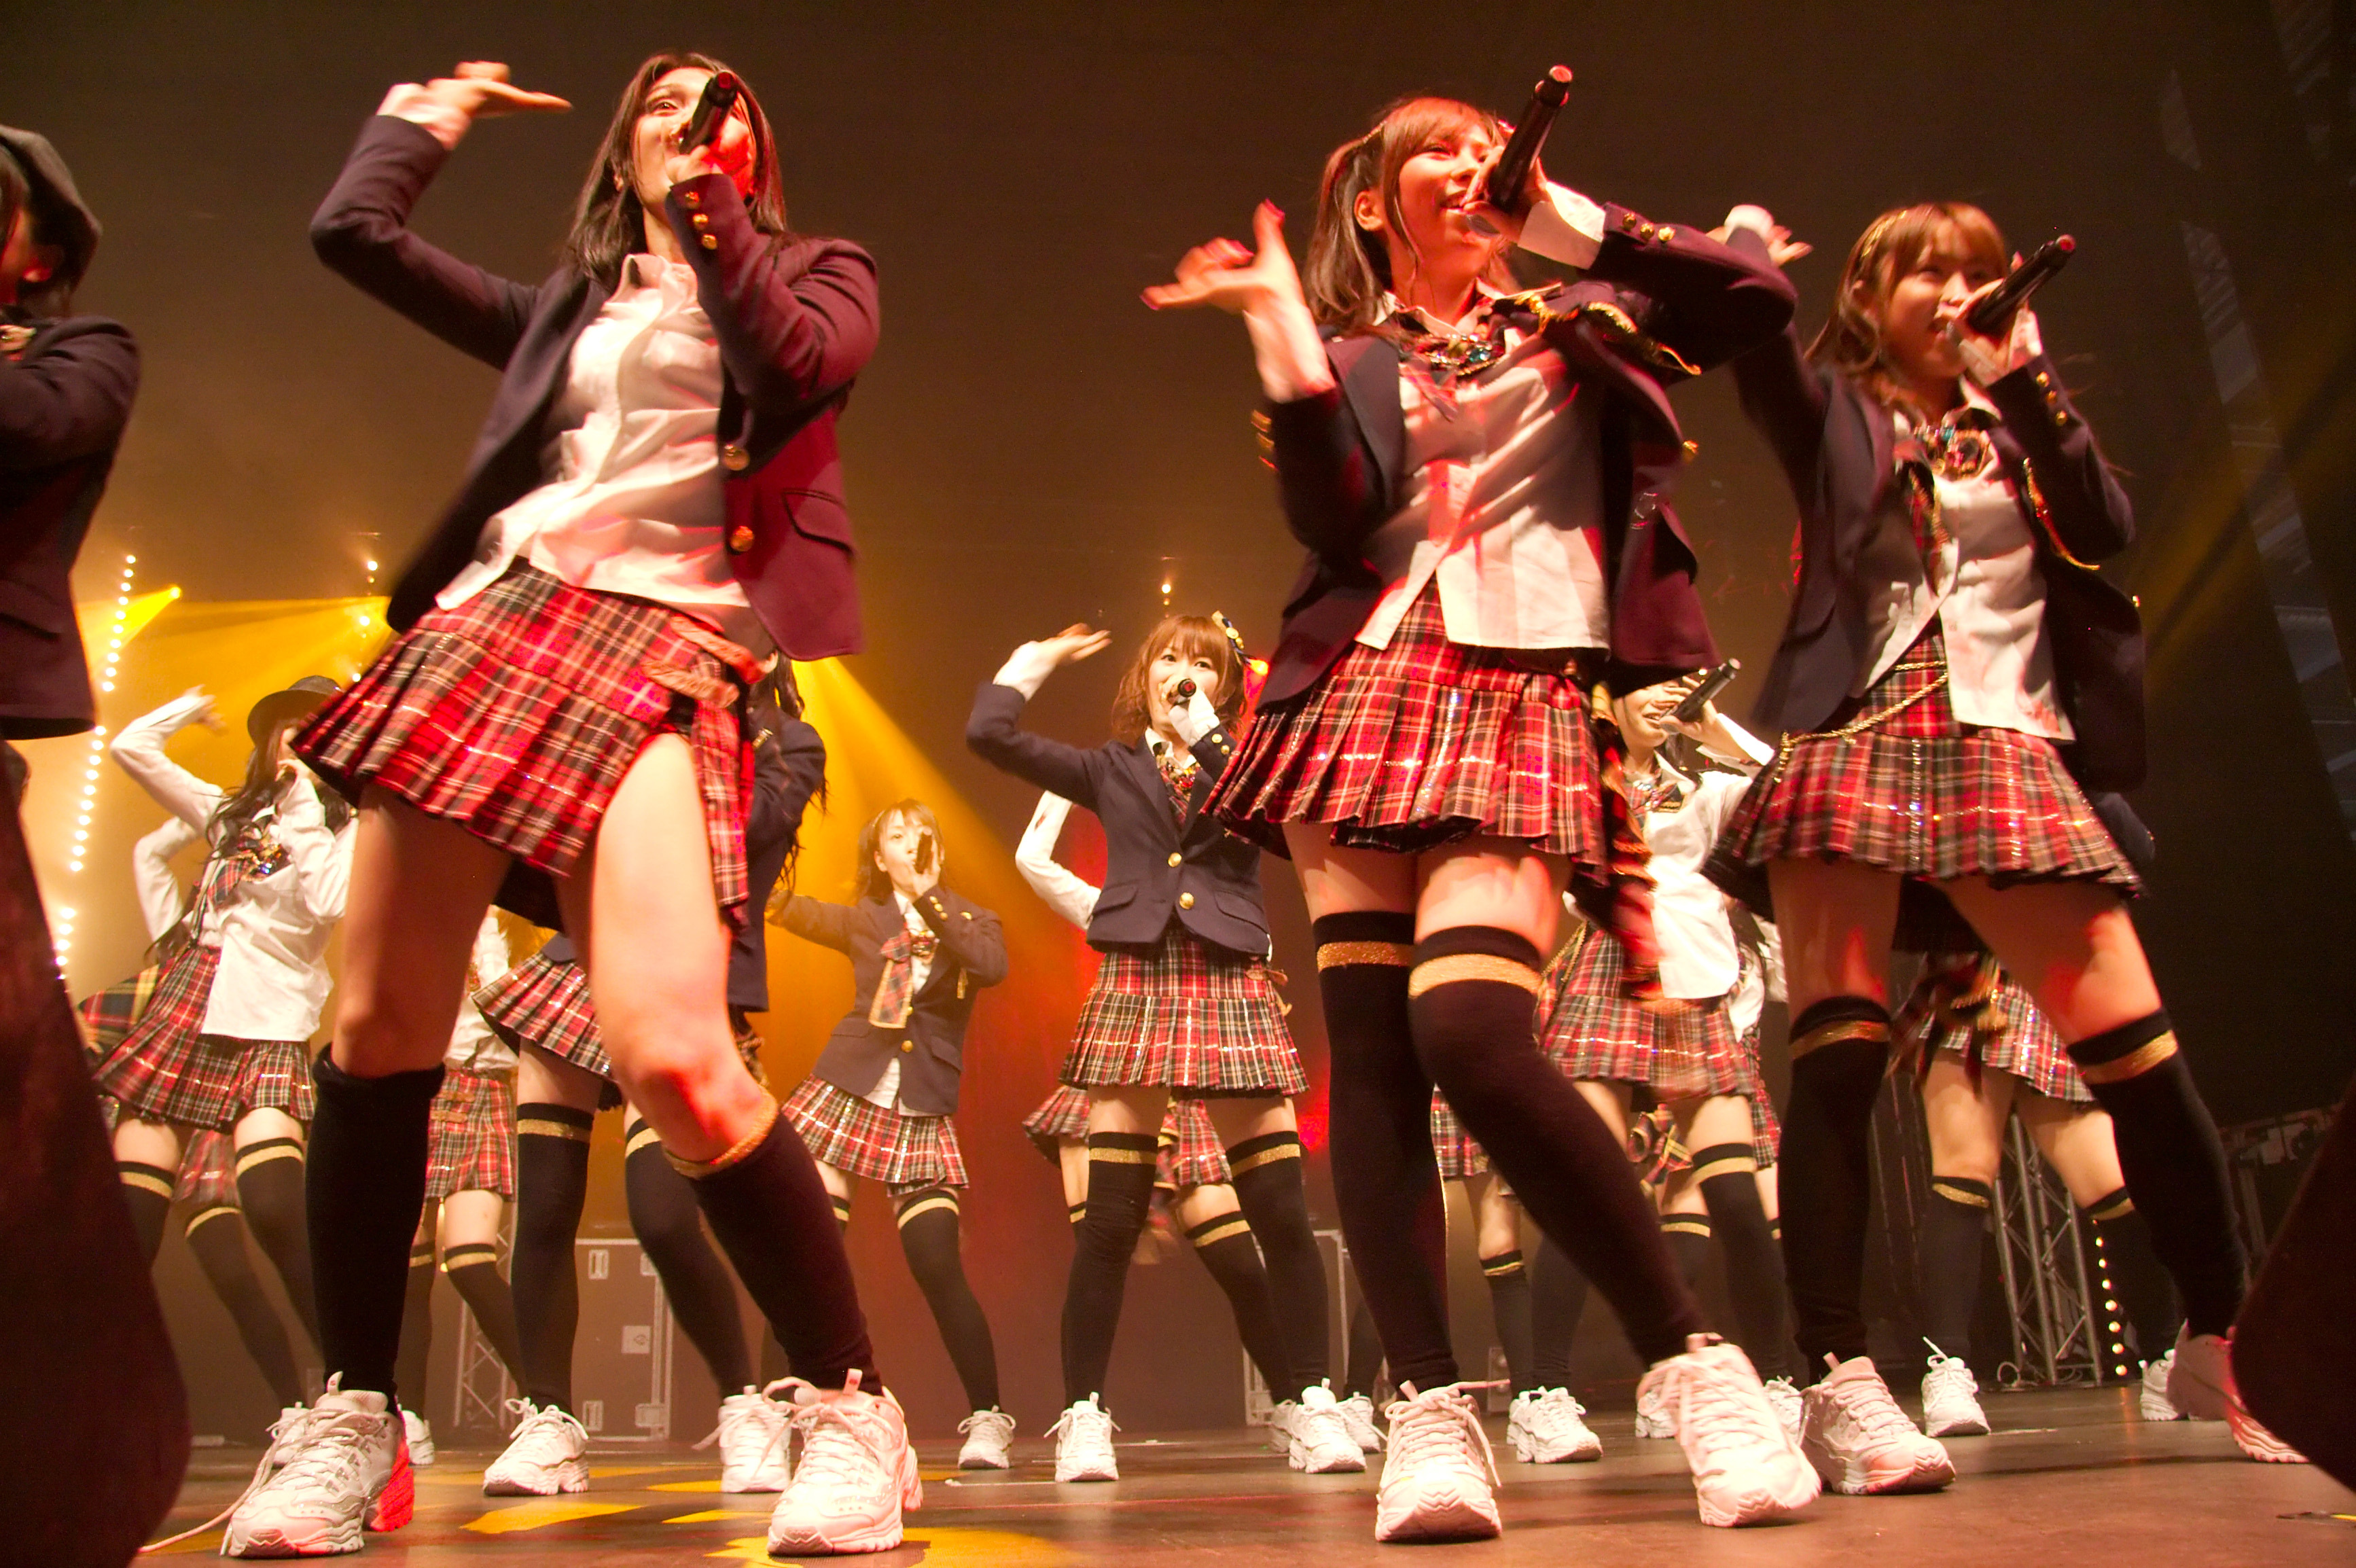 Japanese band AKB48 – co-opted into military recruitment